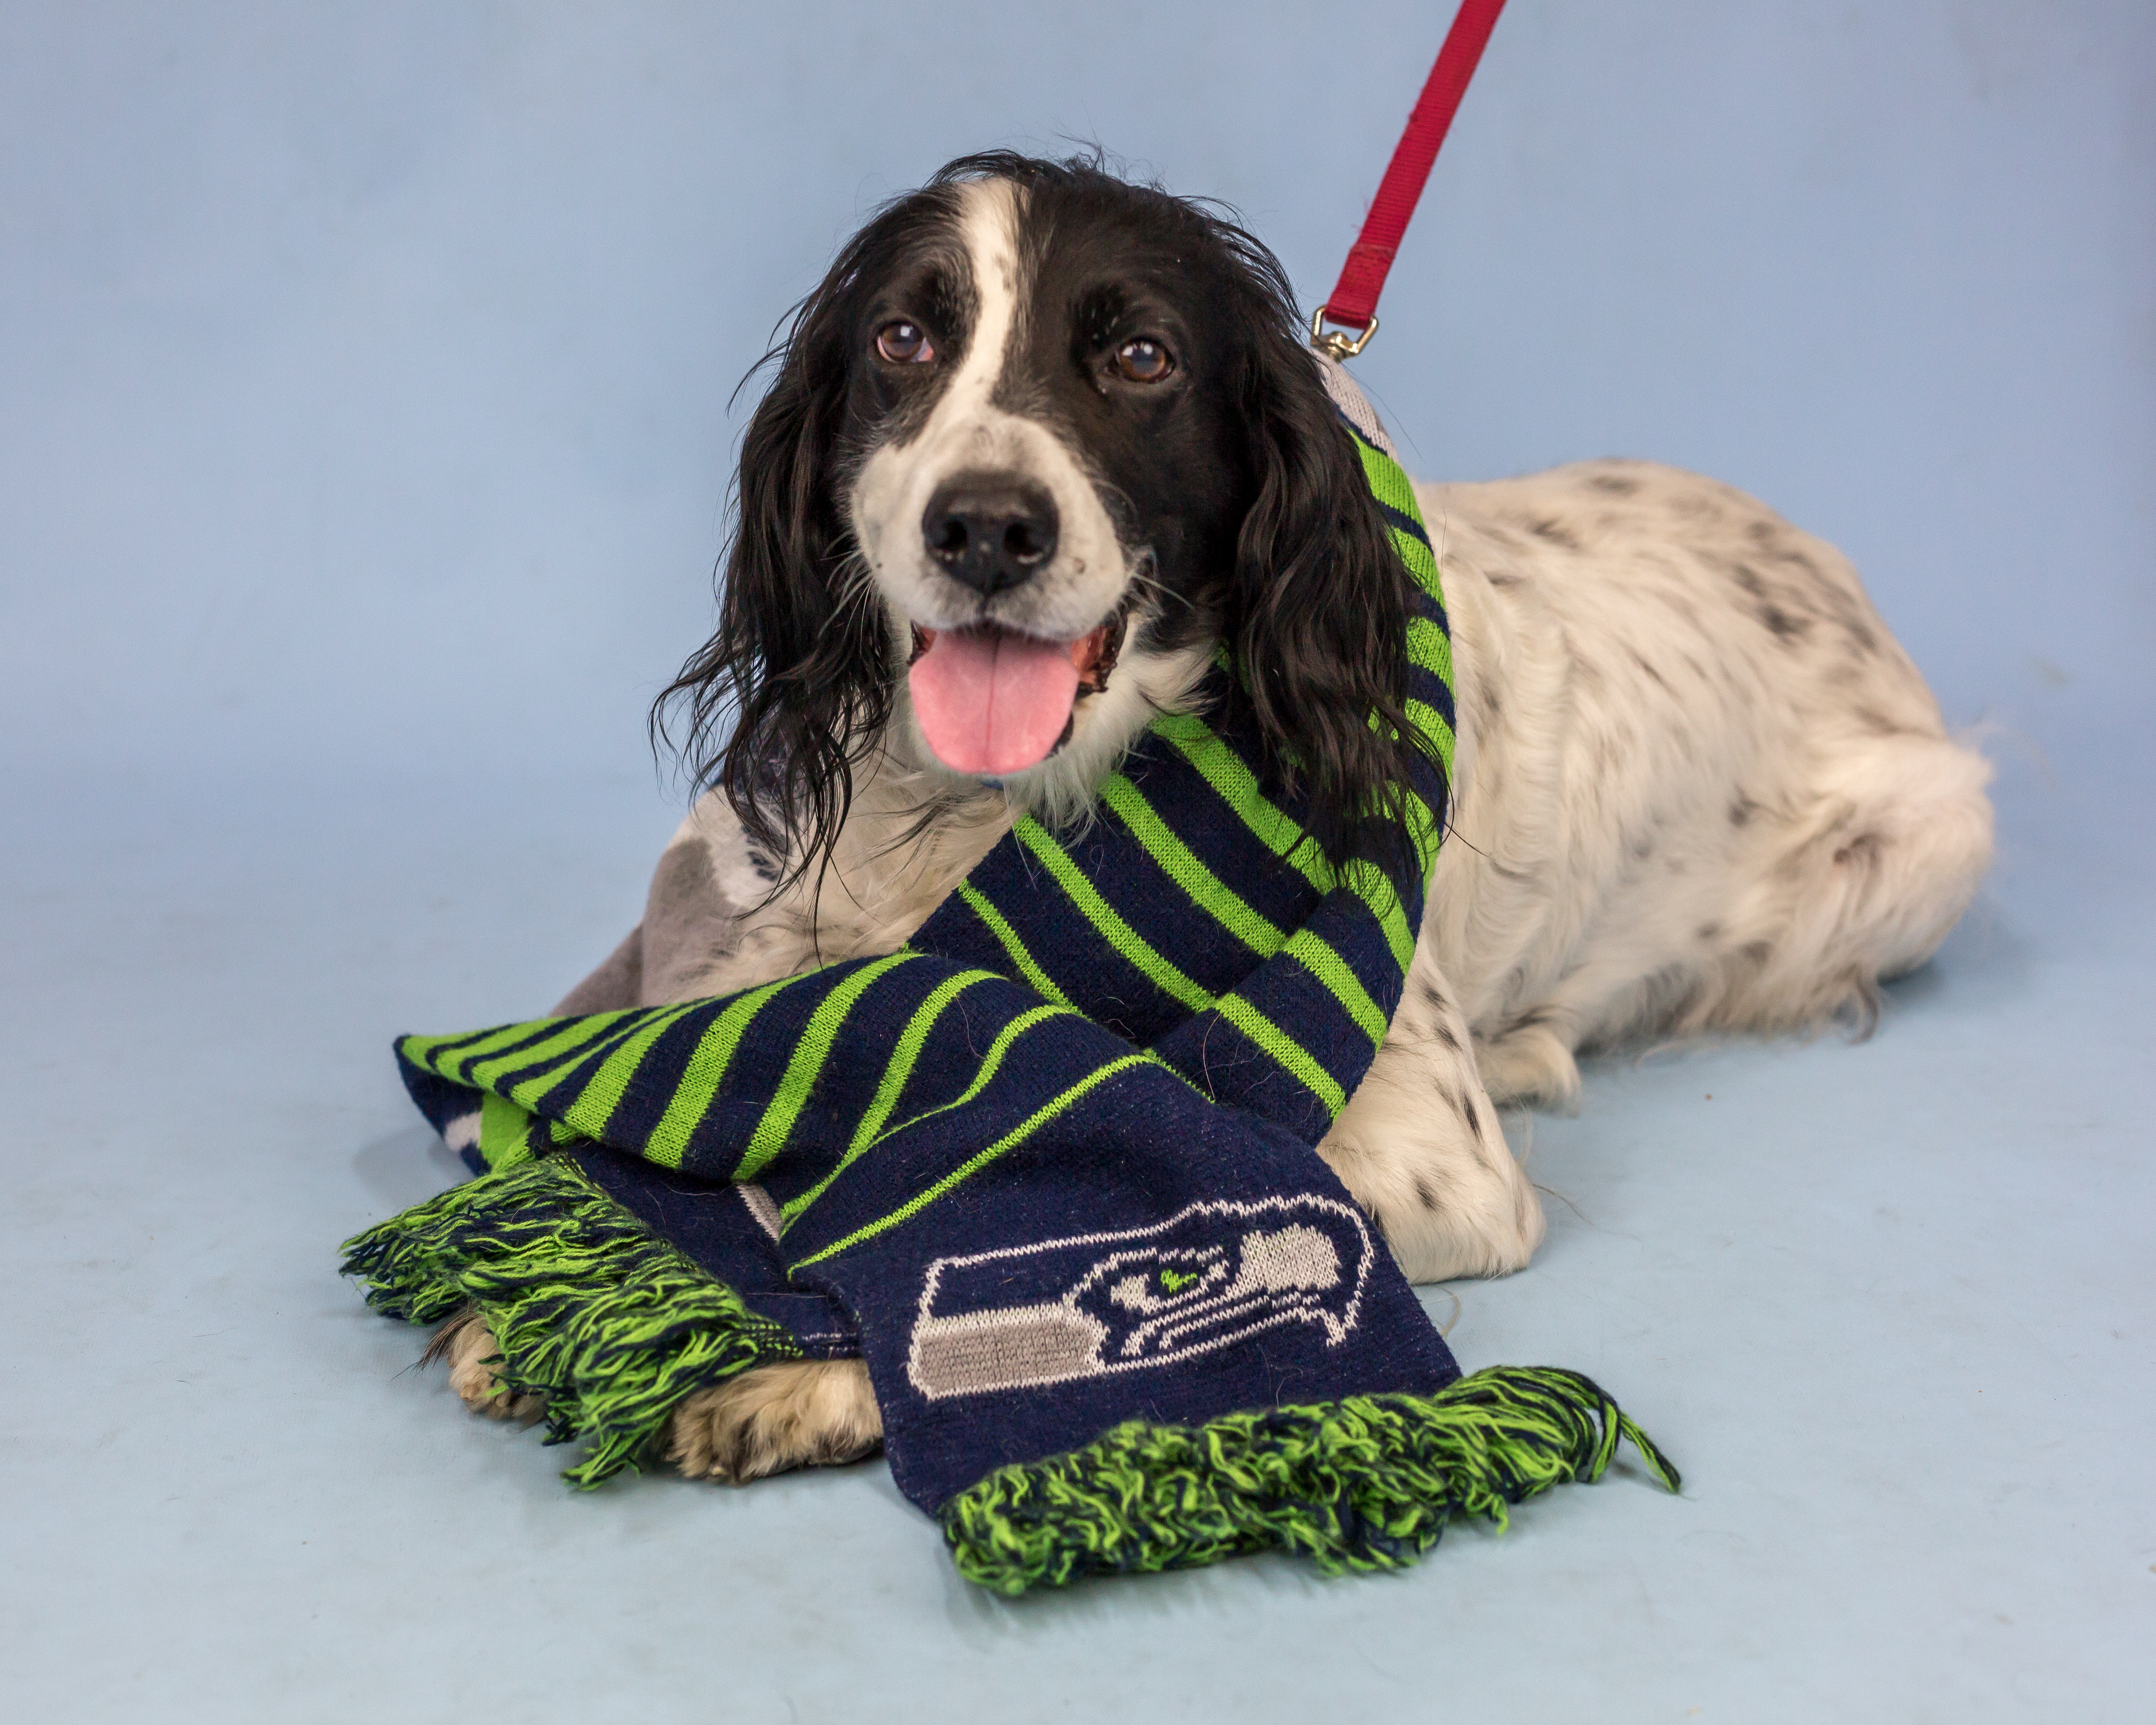 You can call me Belle! I'm a nine year old English Setter looking for a loving family. Loyal and devoted describe me well and I'd do best with an easygoing dog companion or as your queen bee lady! If I could join a regular, predictable routine I'd be such a happy girl. Gentle, older kids would be great human siblings for me as I love being with my people most. Can I be your eager to please, game-watching companion?